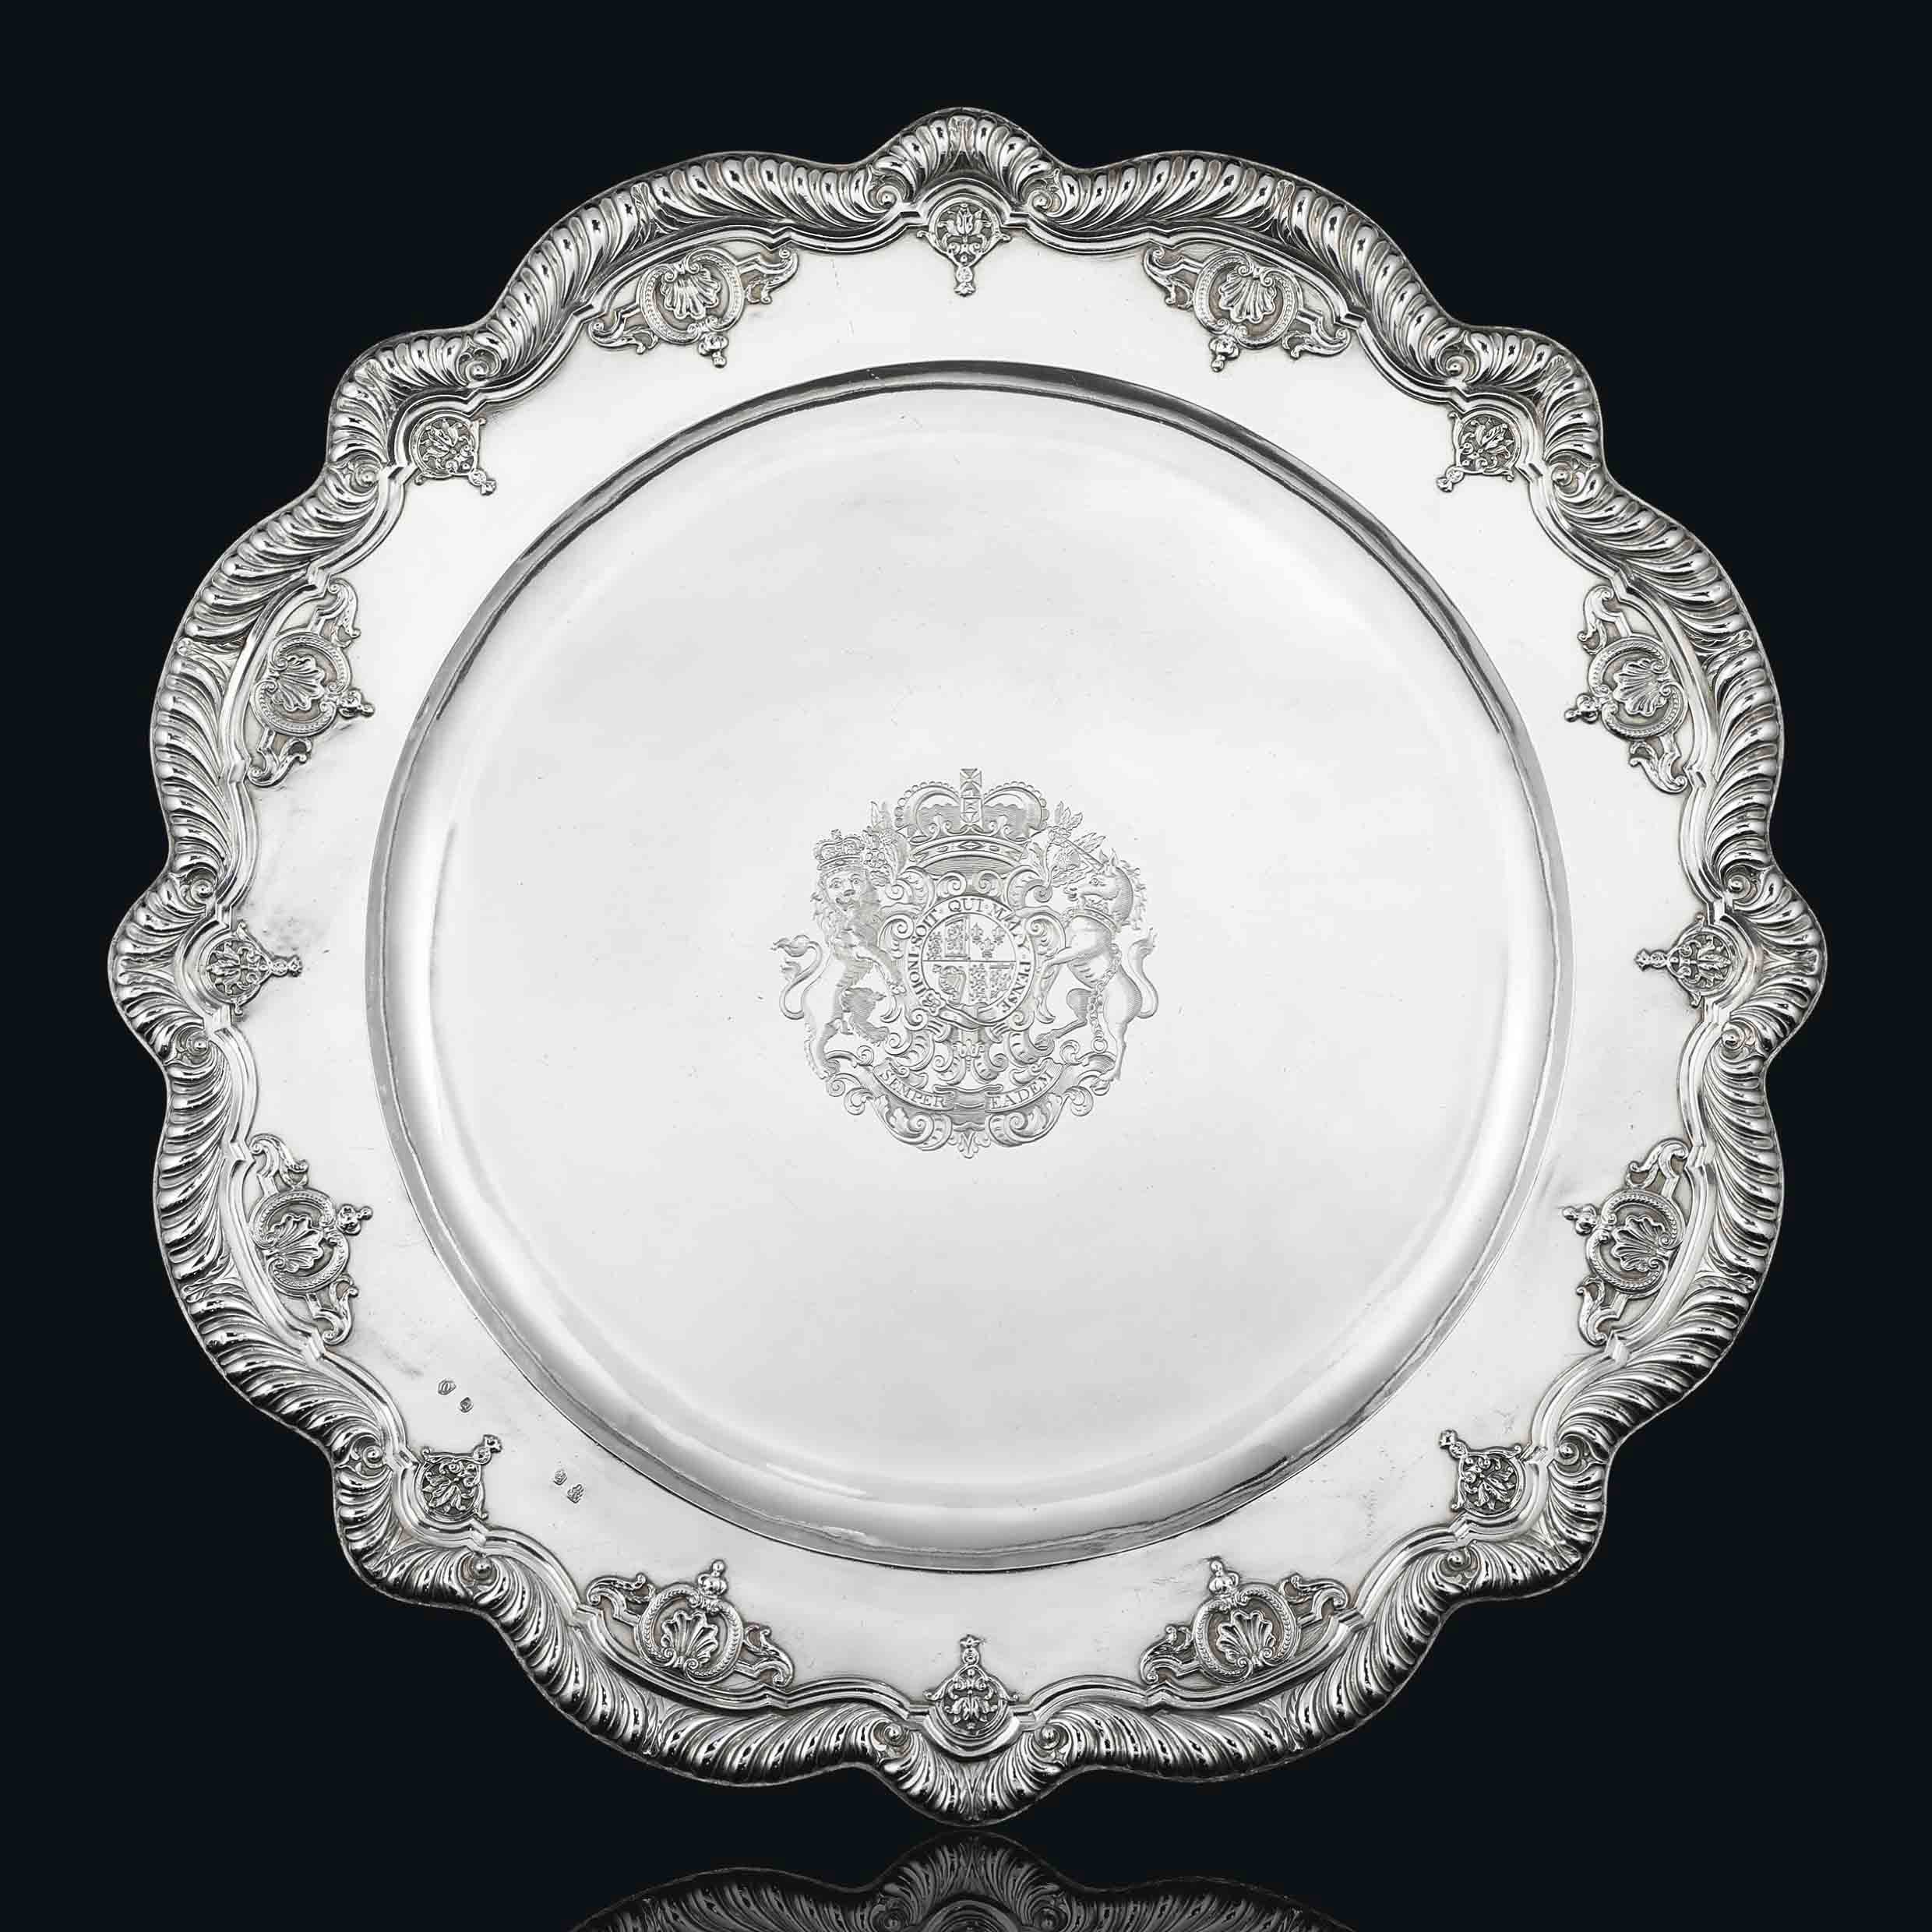 SPEAKER HANMER'S SIDEBOARD-DISH A QUEEN ANNE SILVER SIDEBOARD-DISH OR BASIN